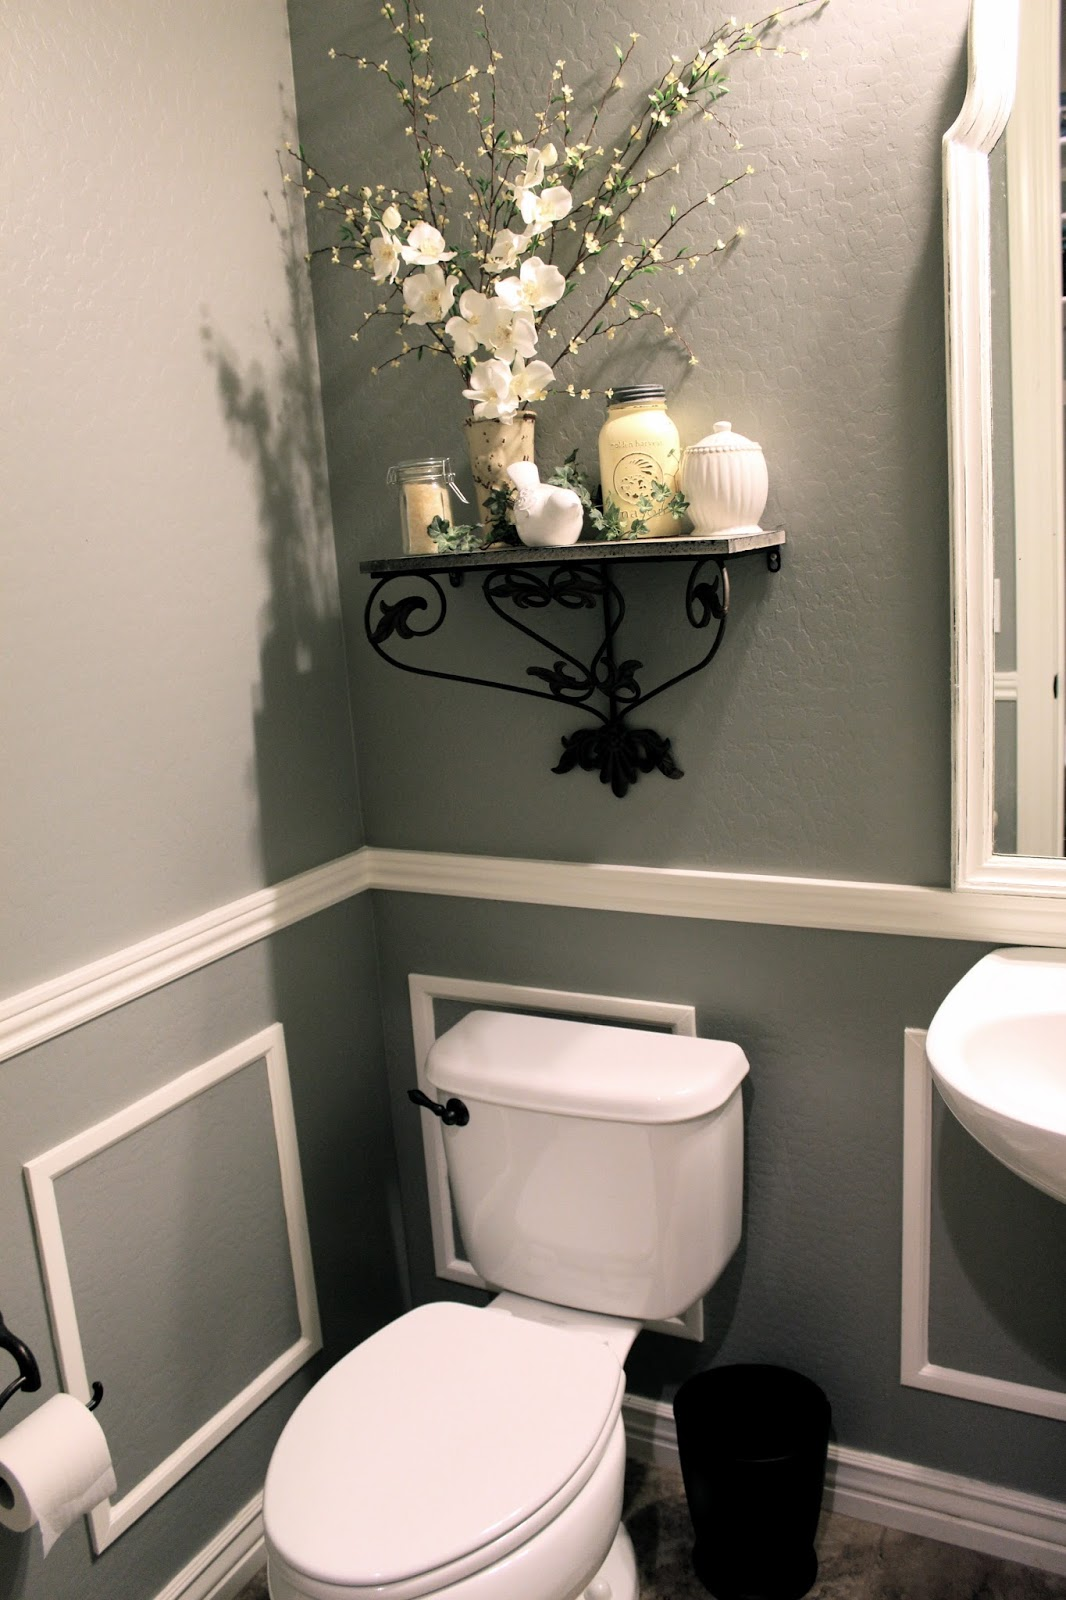 Little Bit Of Paint Thrifty Thursday Bathroom Reveal